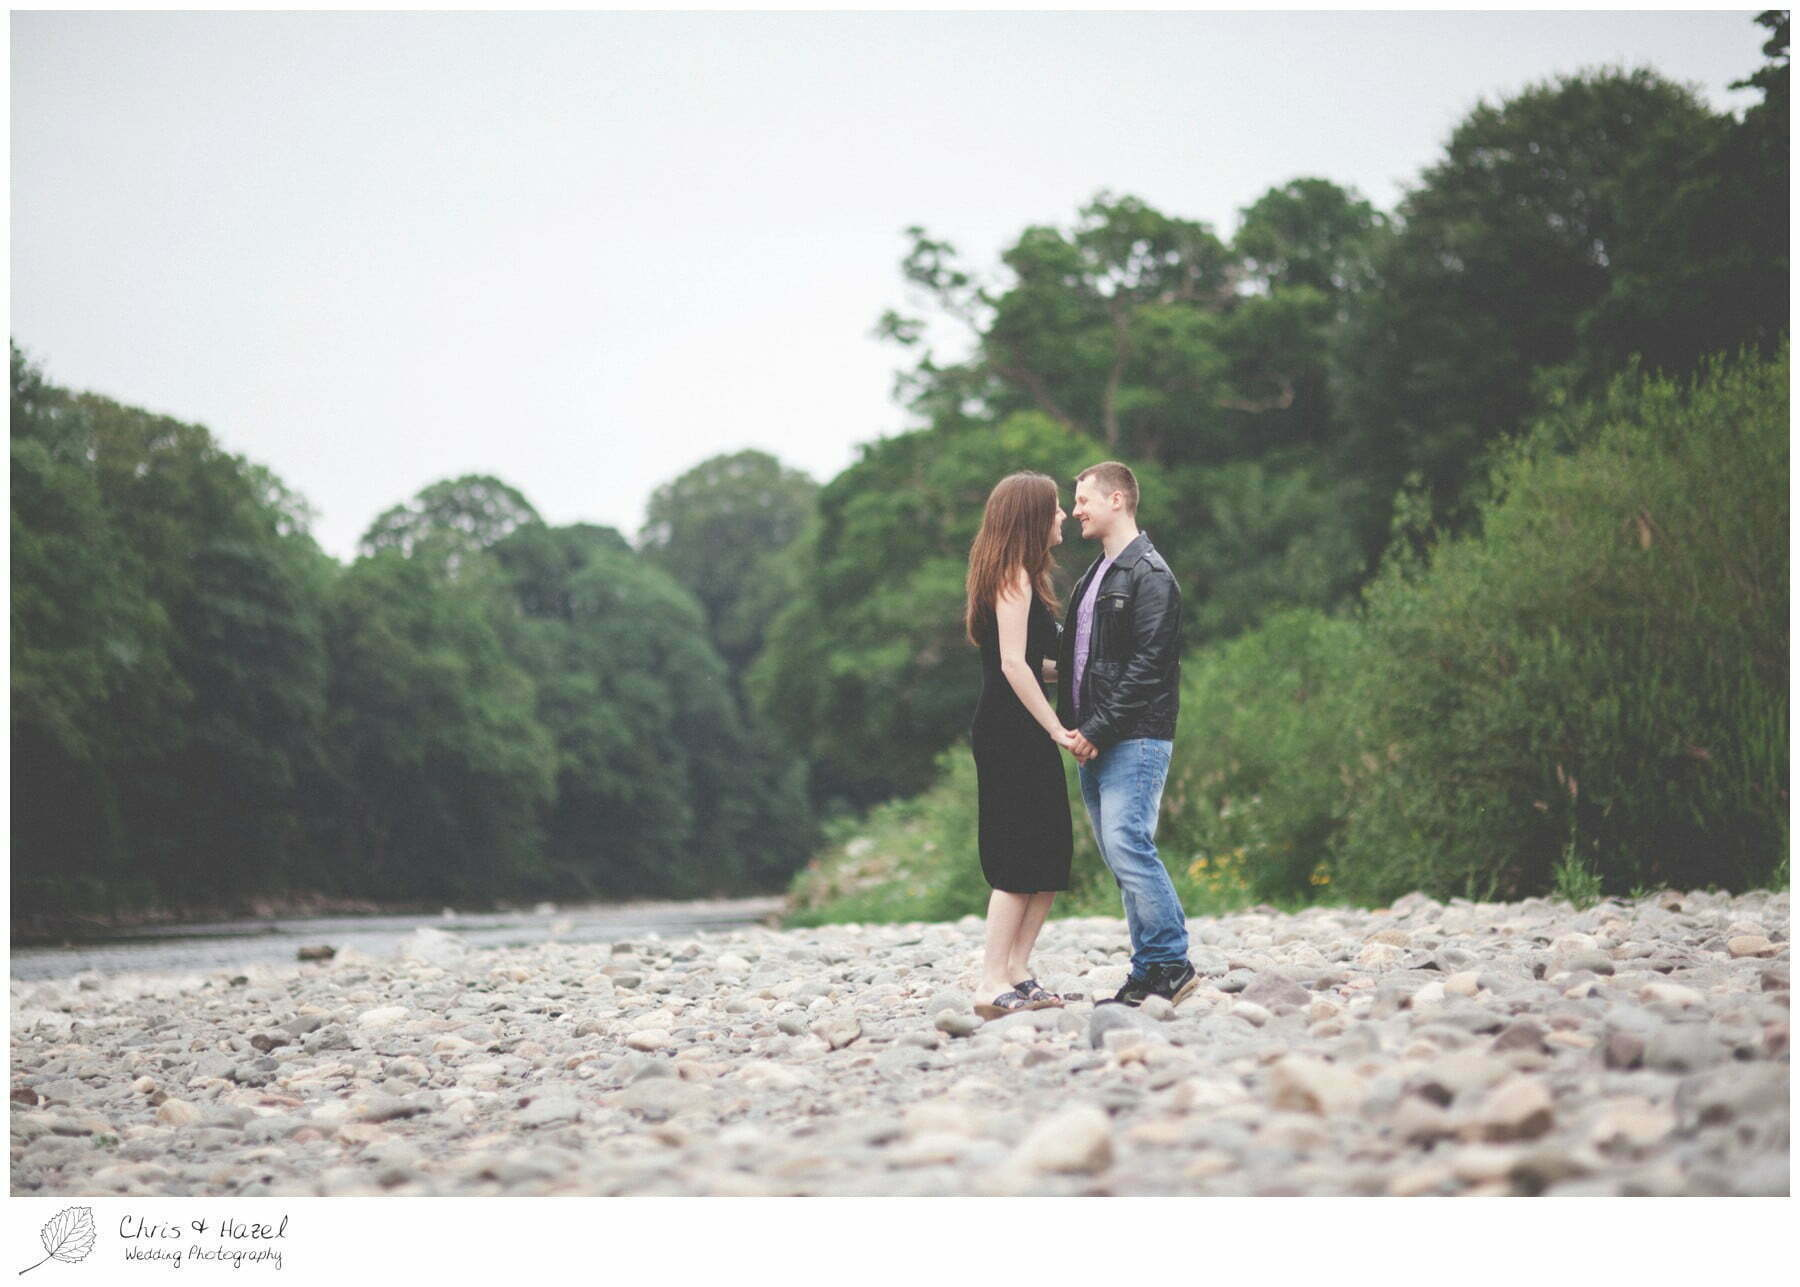 Kirby Lonsdale Pre Wedding Photographer Devils bridge Wedding Photography Cumbria by Chris and Hazel Wedding Photography Tom Goulding Micha Waite